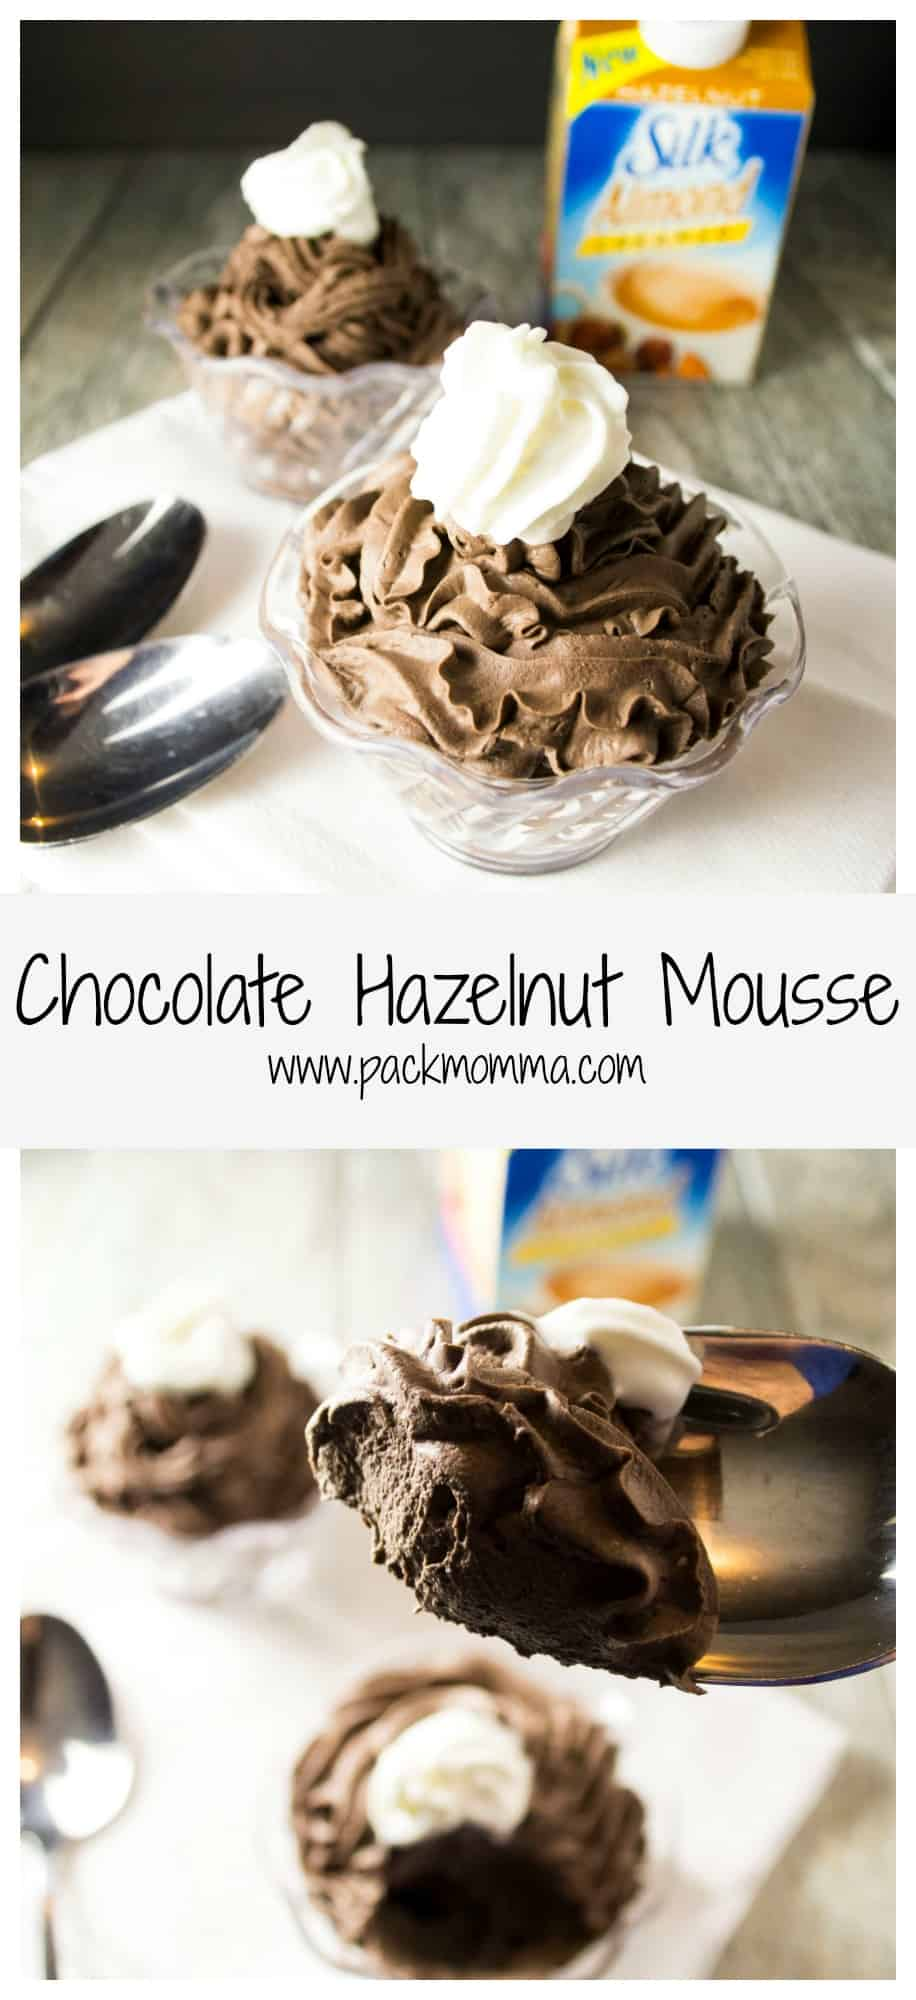 Chocolate Hazelnut Mousse | Treat yourself to the perfect cup of coffee and this decadent low fat Chocolate Hazelnut Mousse all thanks to dairy free Silk Creamer. | Pack Momma | https://www.packmomma.com